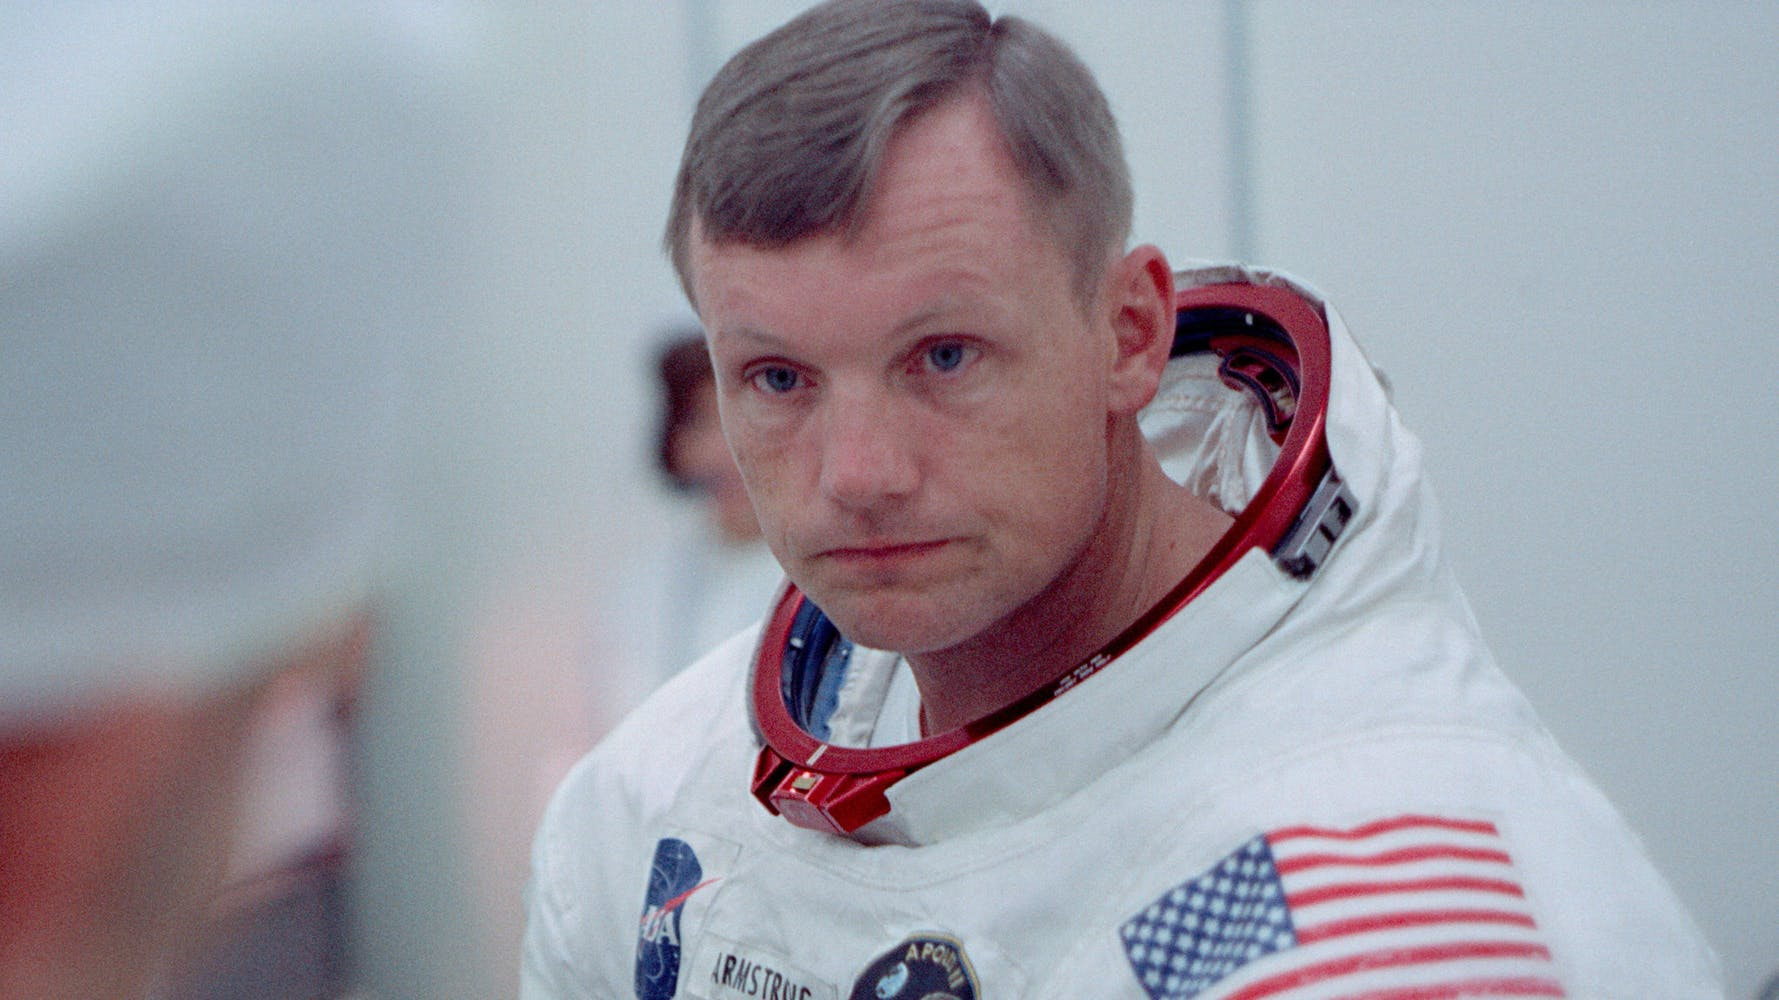 Astronaut Neil Armstrong in an astronaut uniform, helmet off.